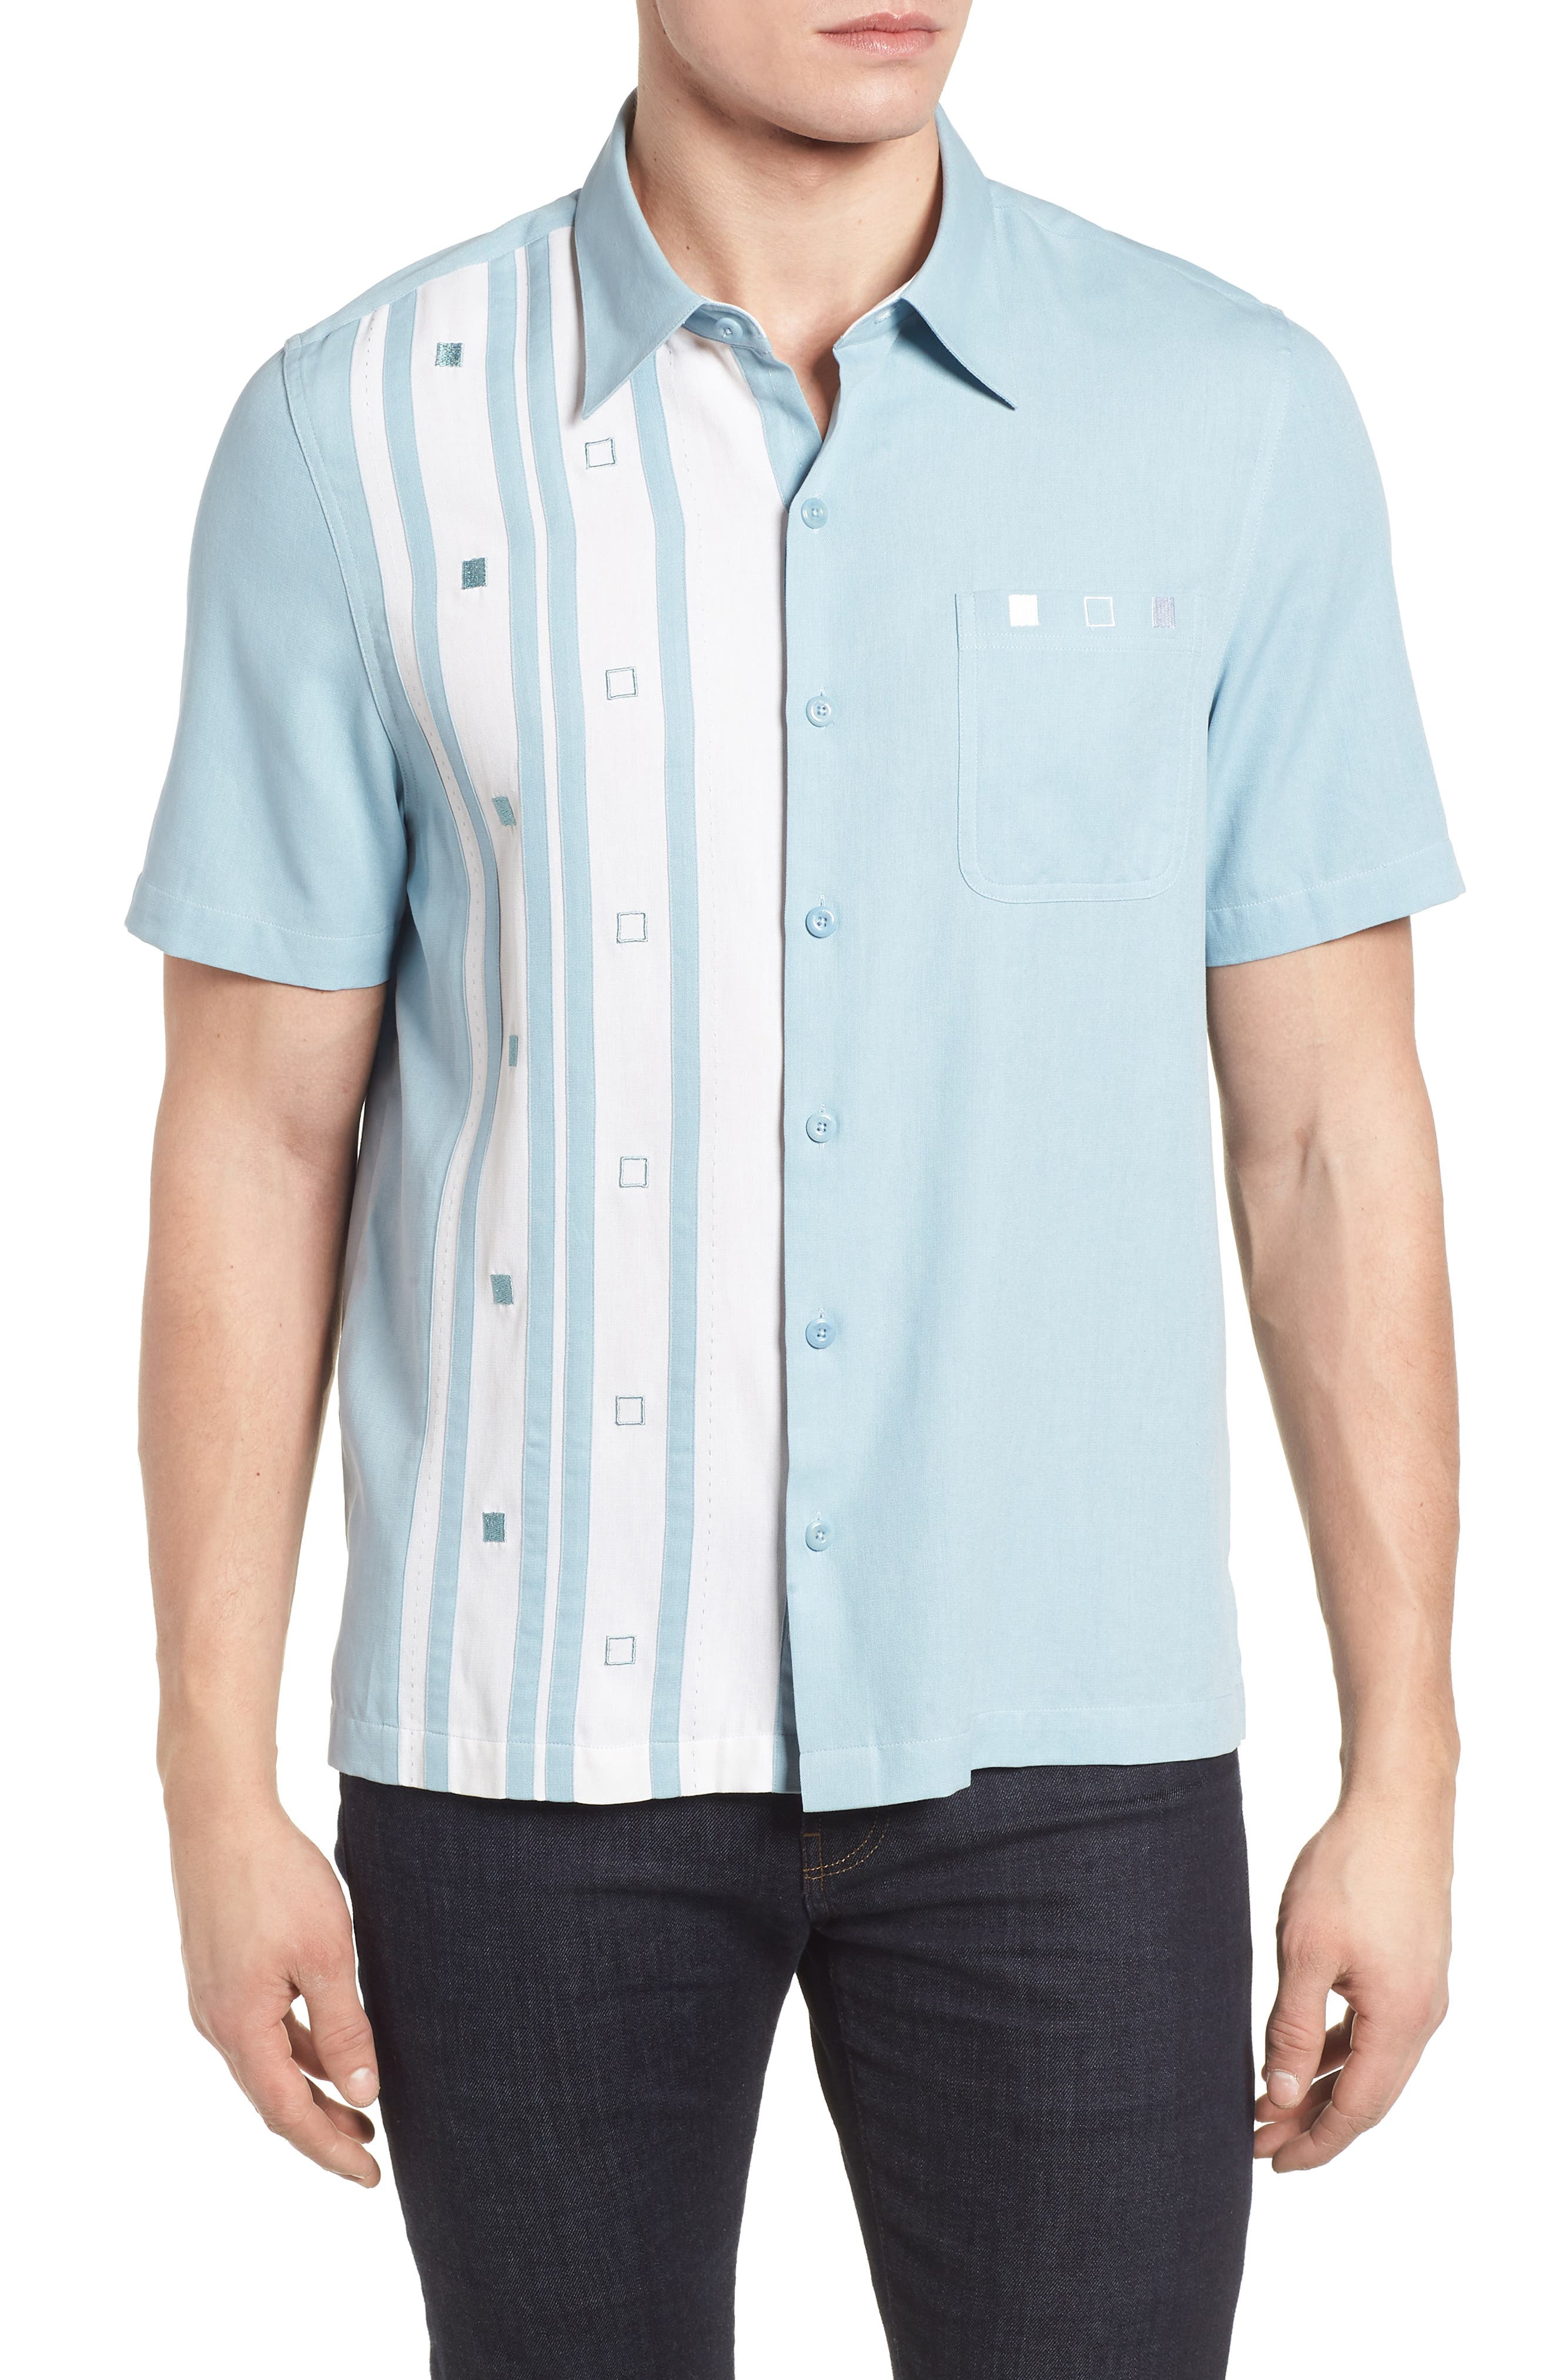 Retromod Camp Shirt,                             Main thumbnail 1, color,                             Niagra Blue